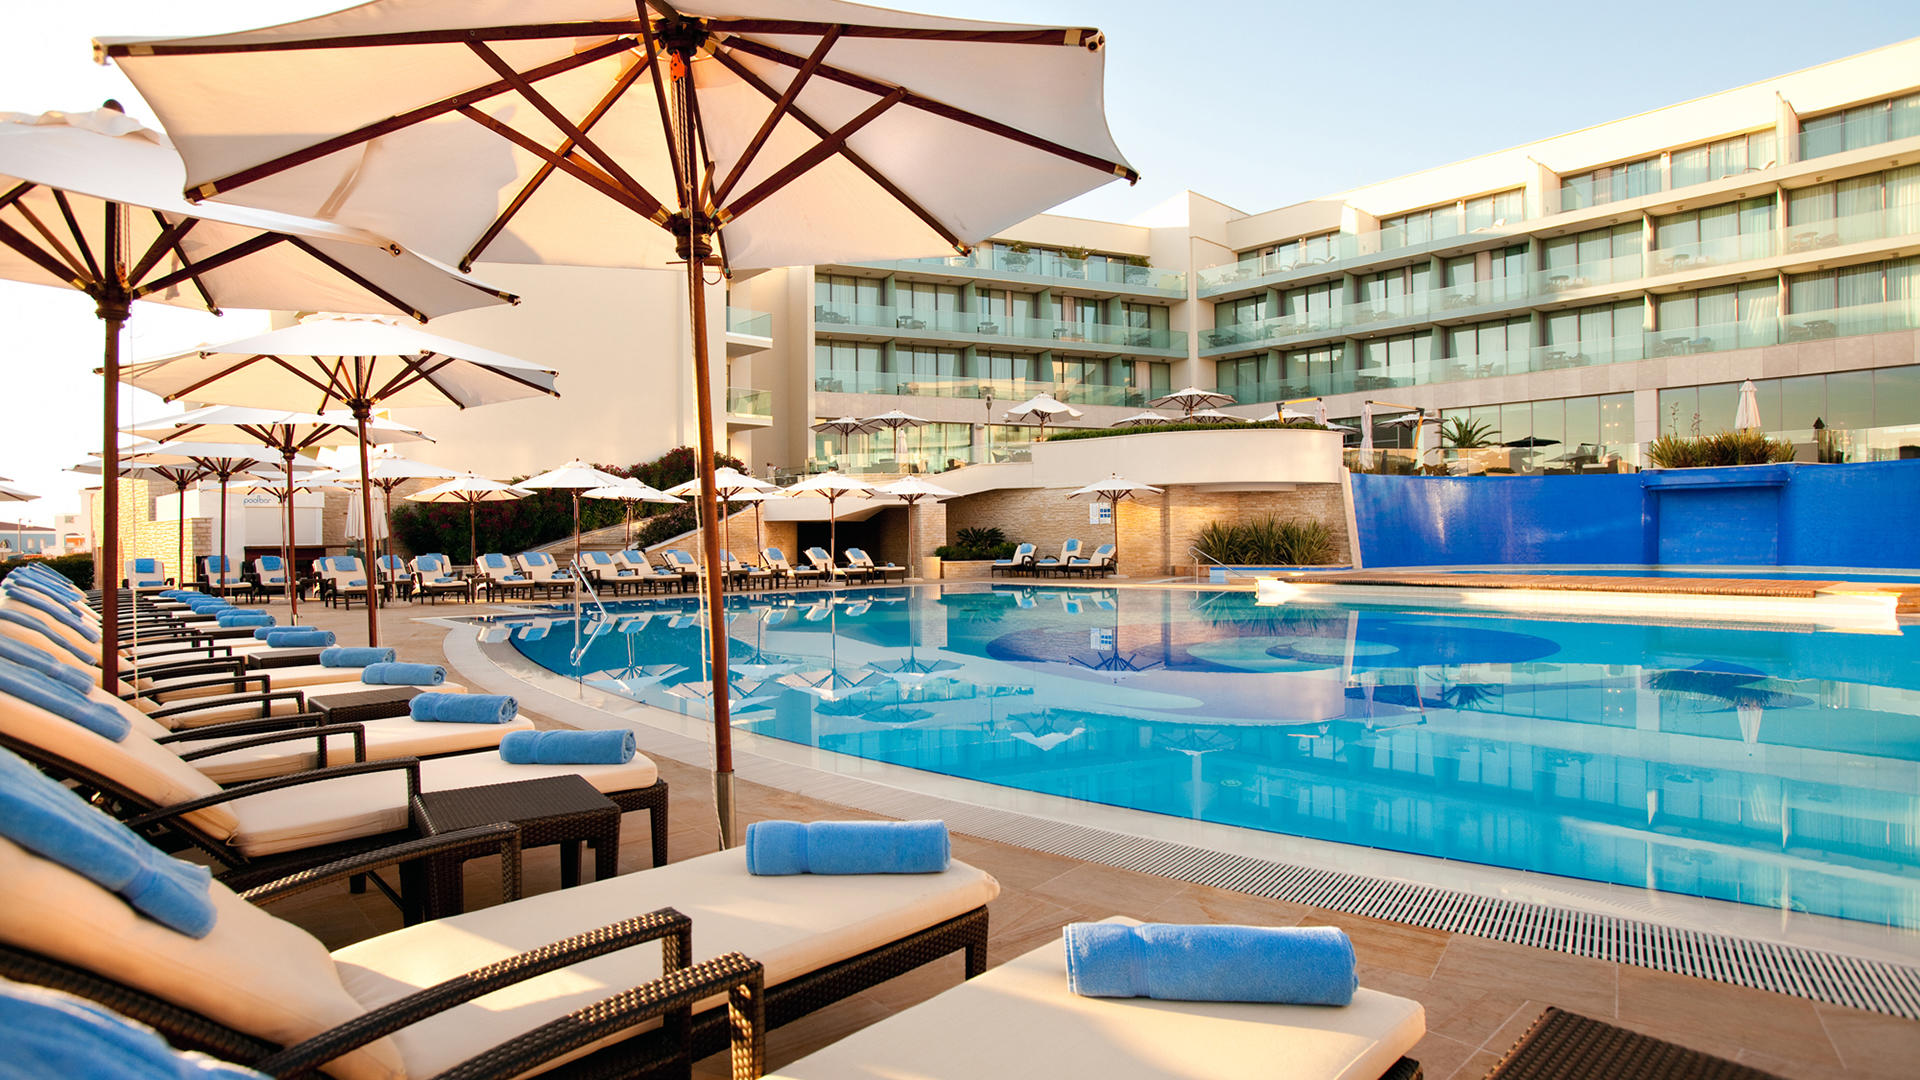 KempinskiAdriatic_Pool02